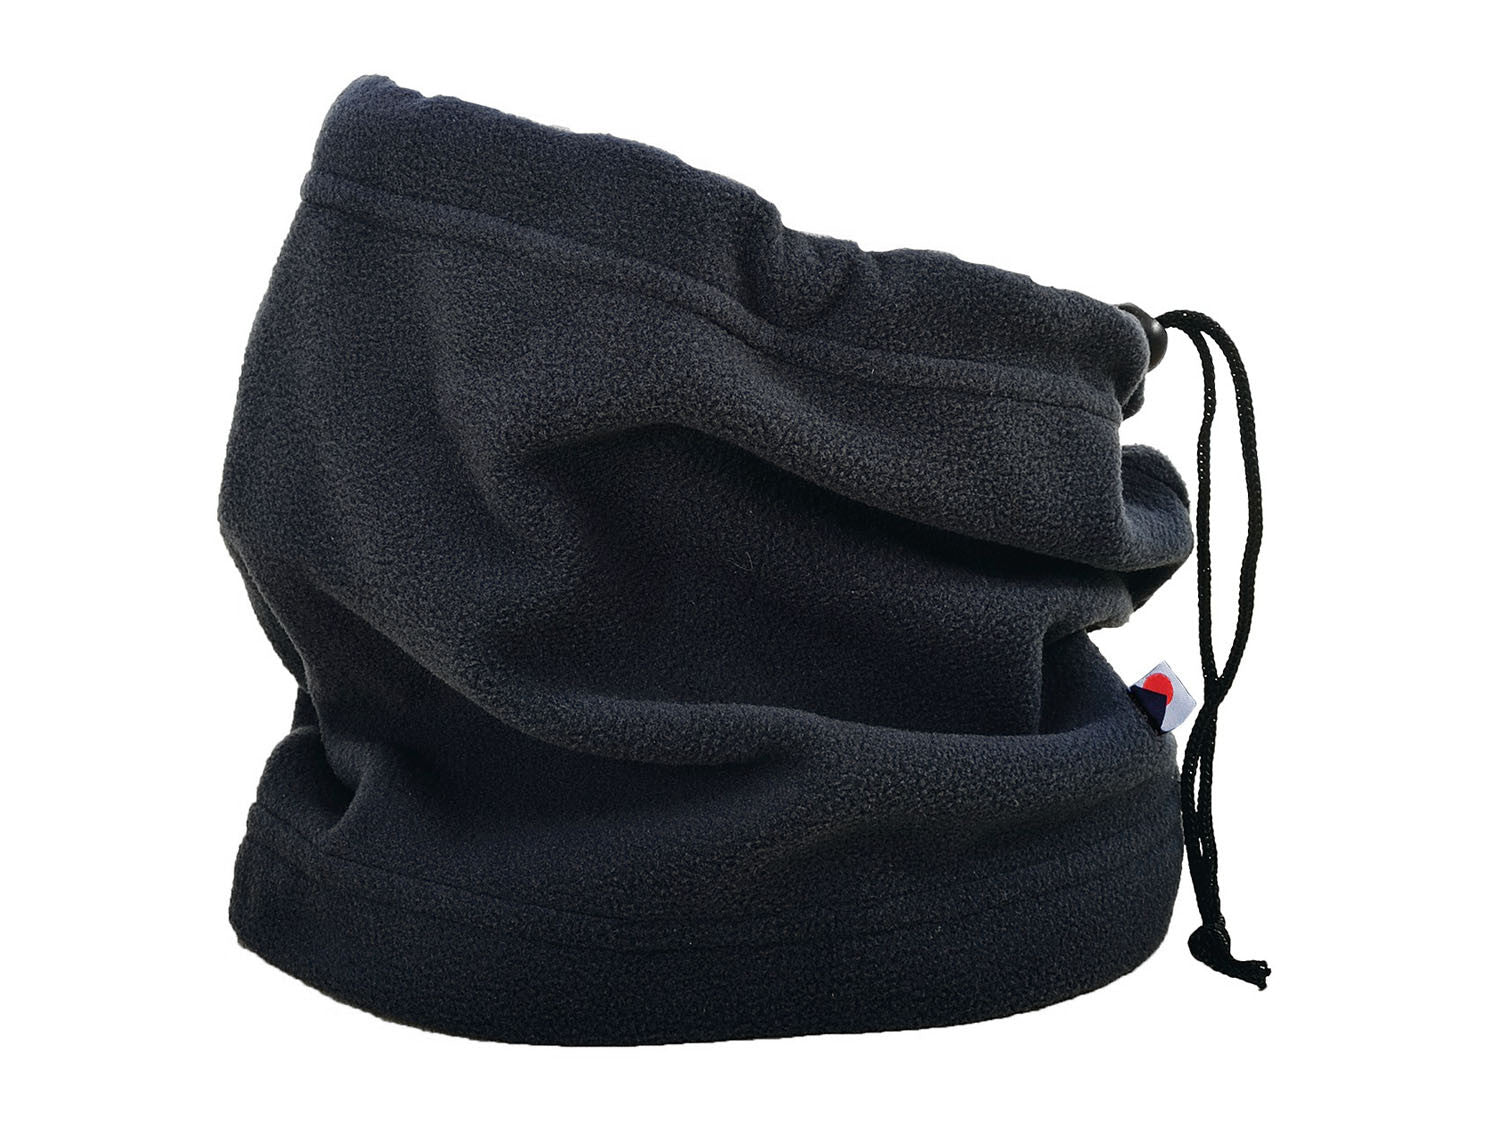 Portwest Fleece Neck Tube